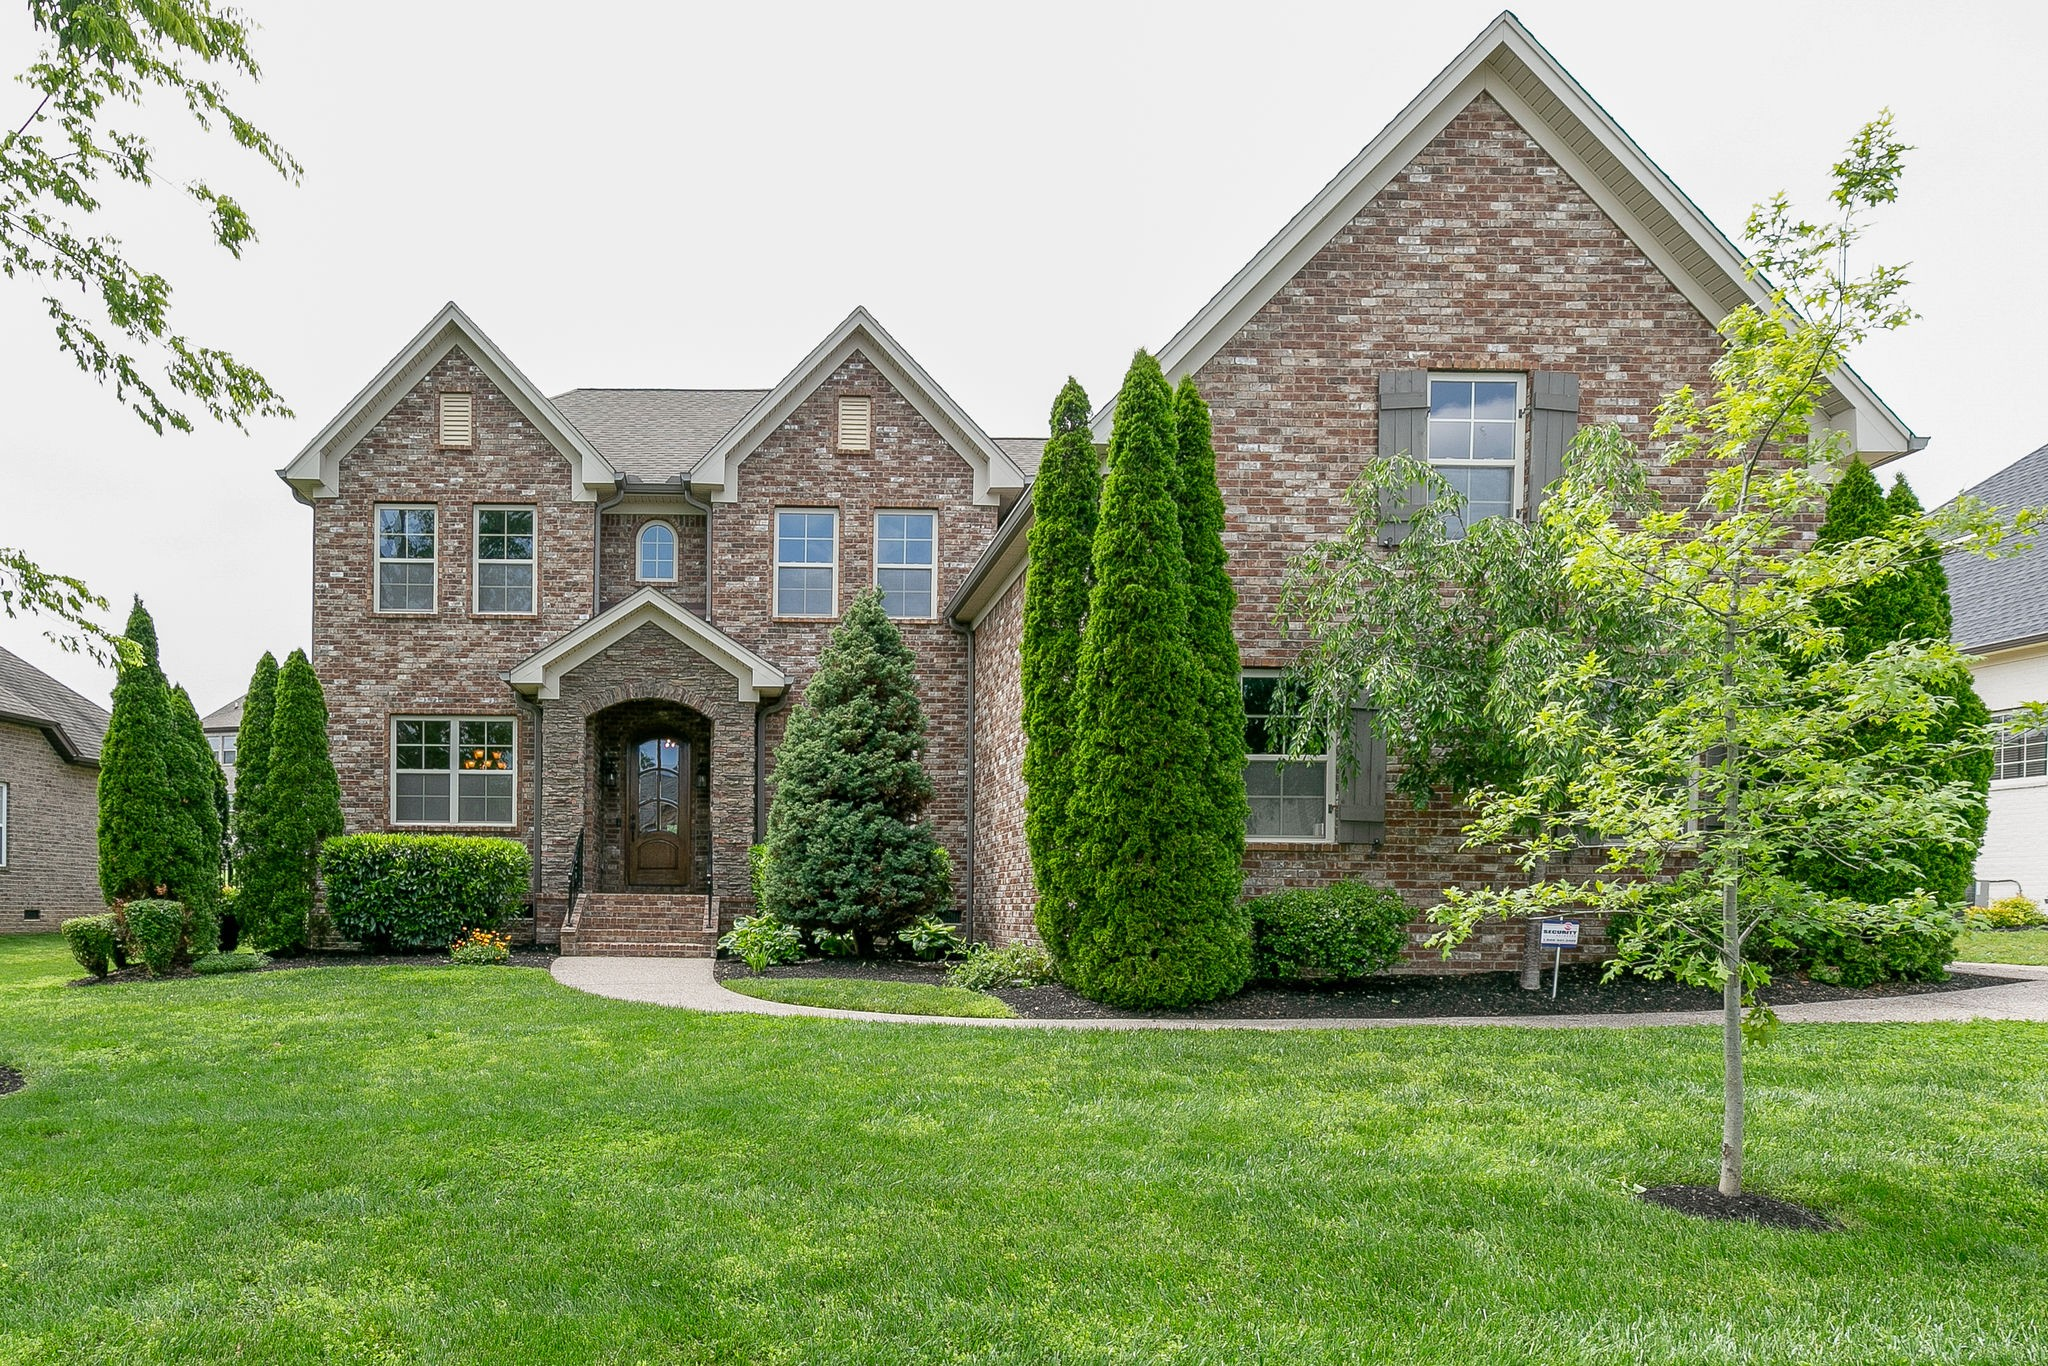 6008 Trout Ln, Spring Hill, Tennessee